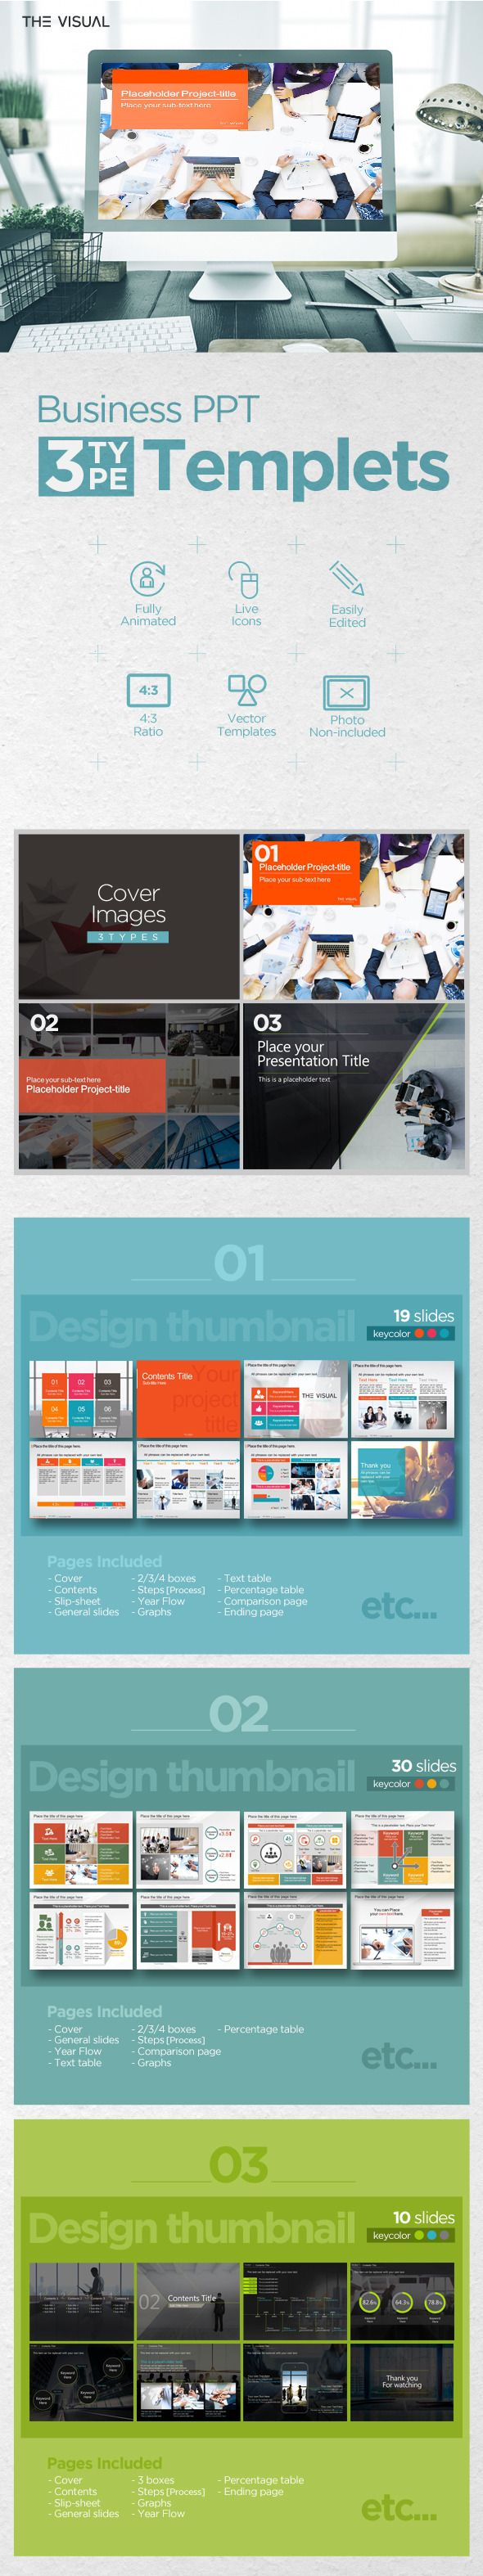 191 best presentation images on pinterest page layout powerpoint template design slides download httpgraphicriver toneelgroepblik Gallery